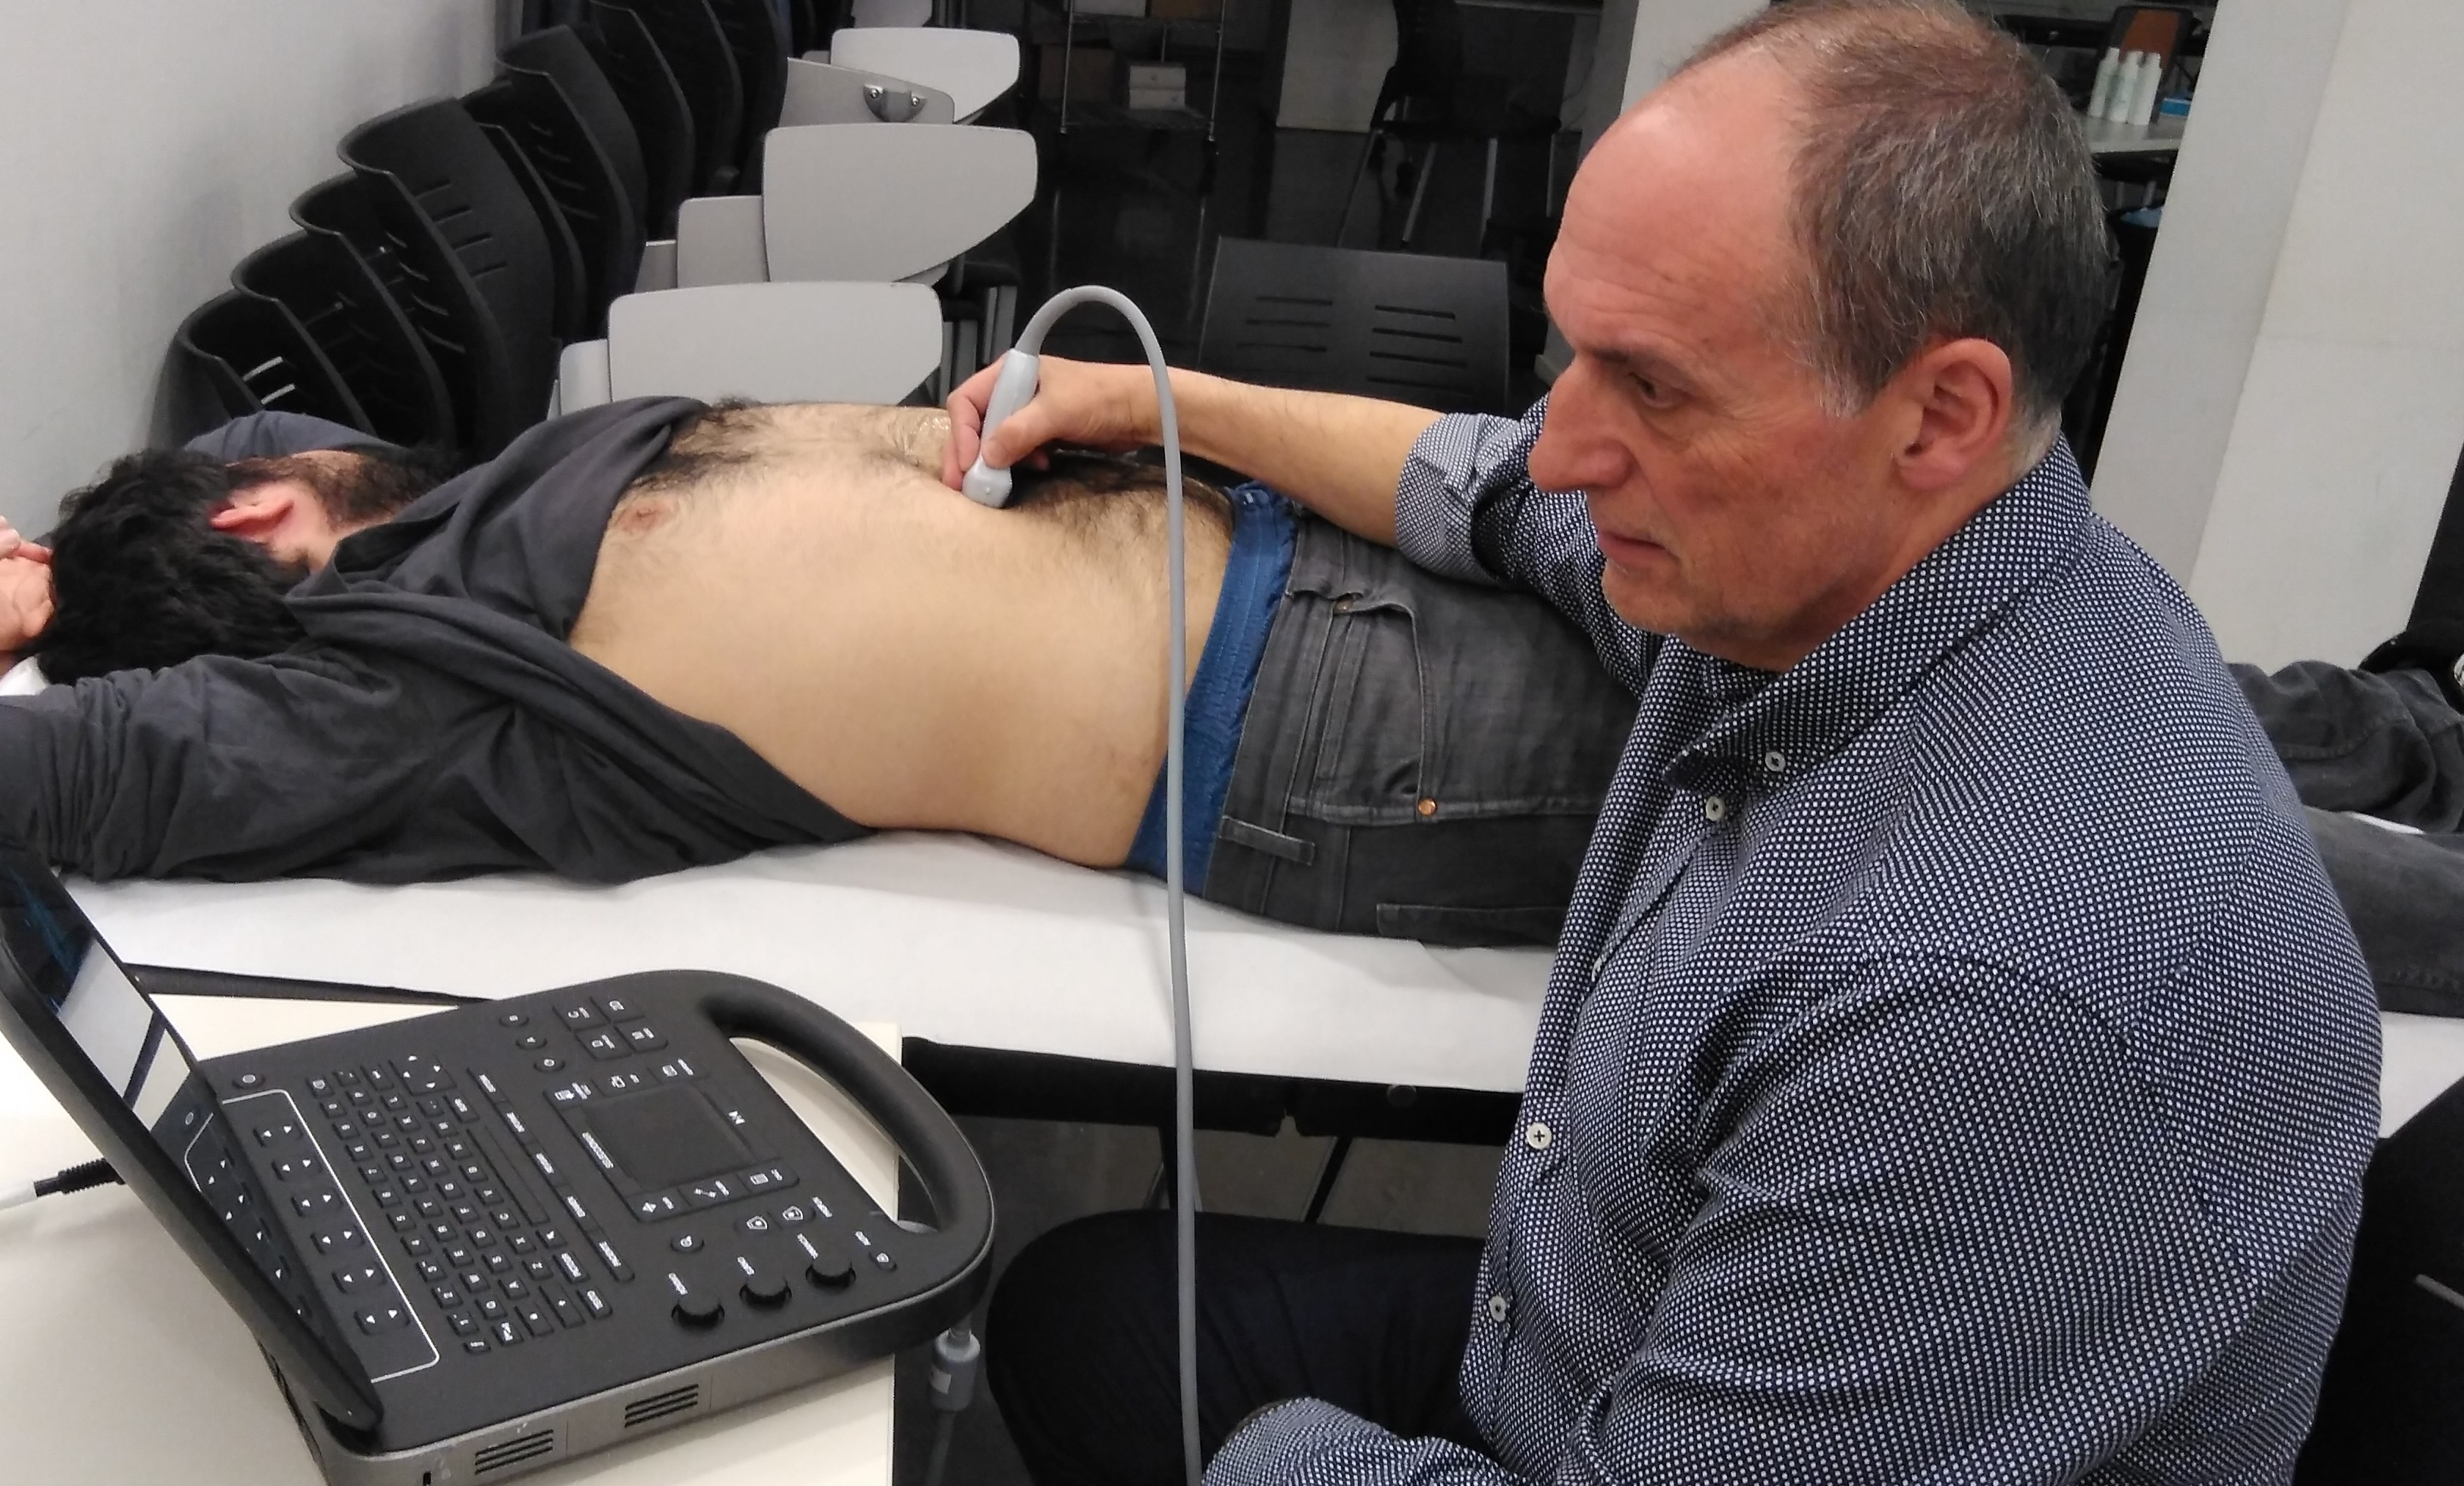 Dr. Pere Guirado using a SonoSite Edge II